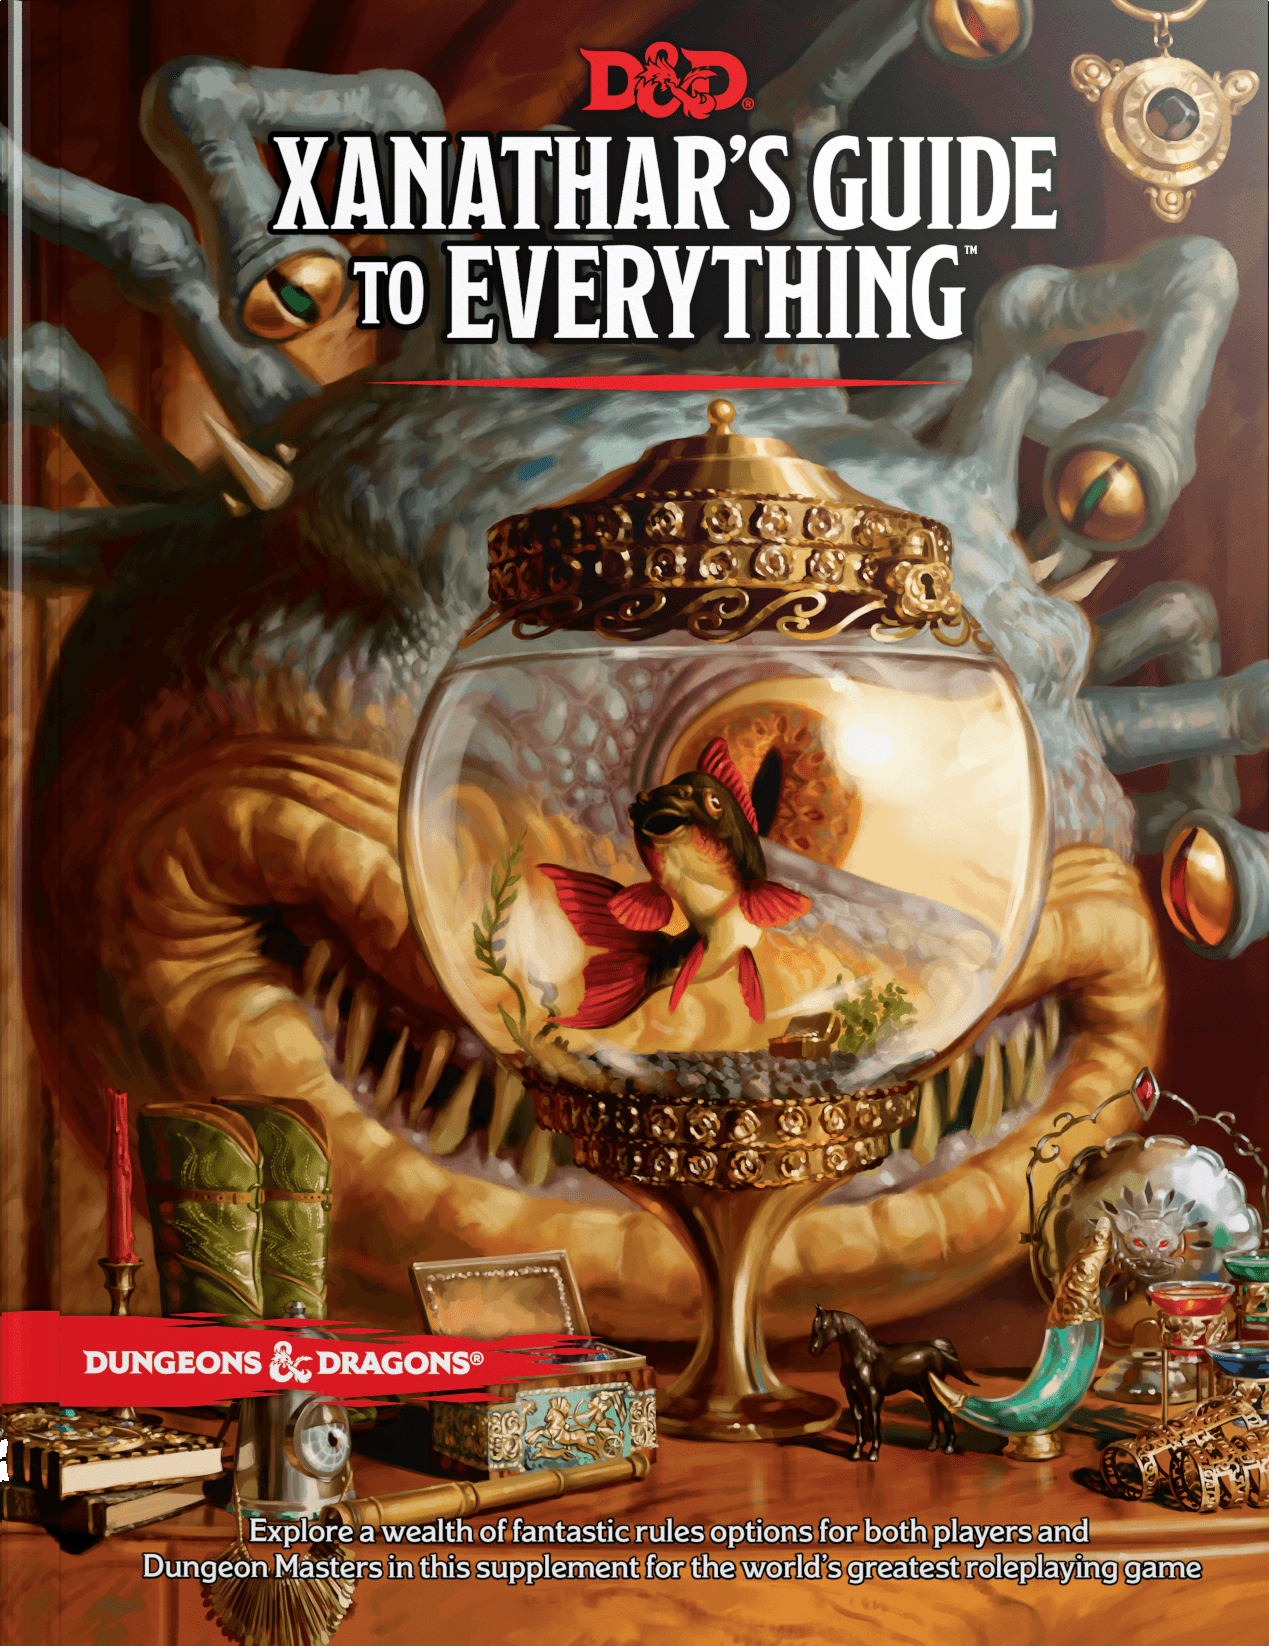 Xanathar's Guide to Everything | Forgotten Realms Wiki | FANDOM